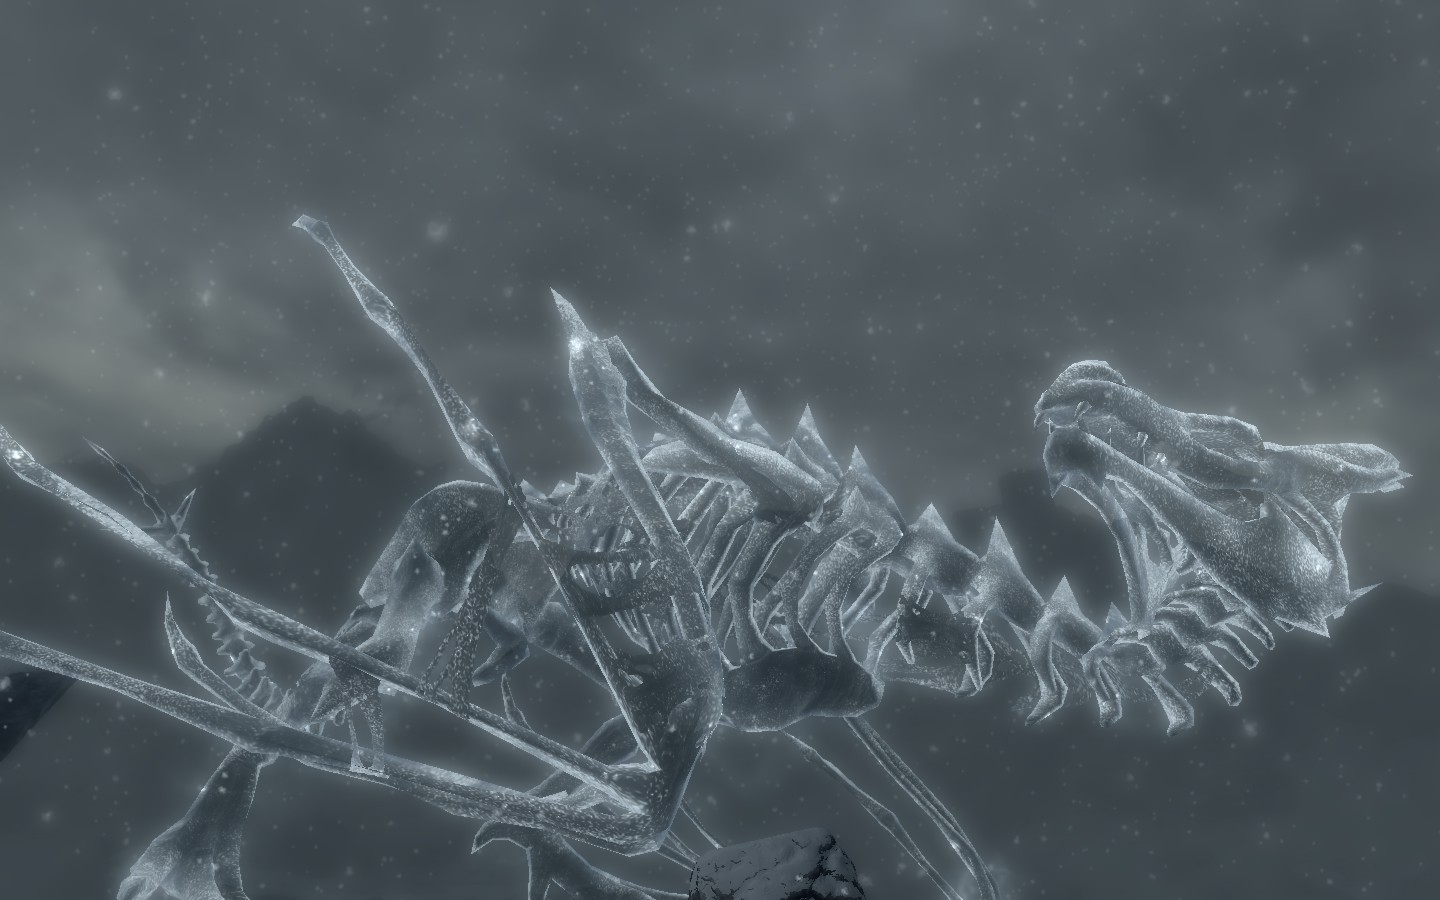 Pin Undead Frost Dragon Vedstrunah At Skyrim Nexus Mods